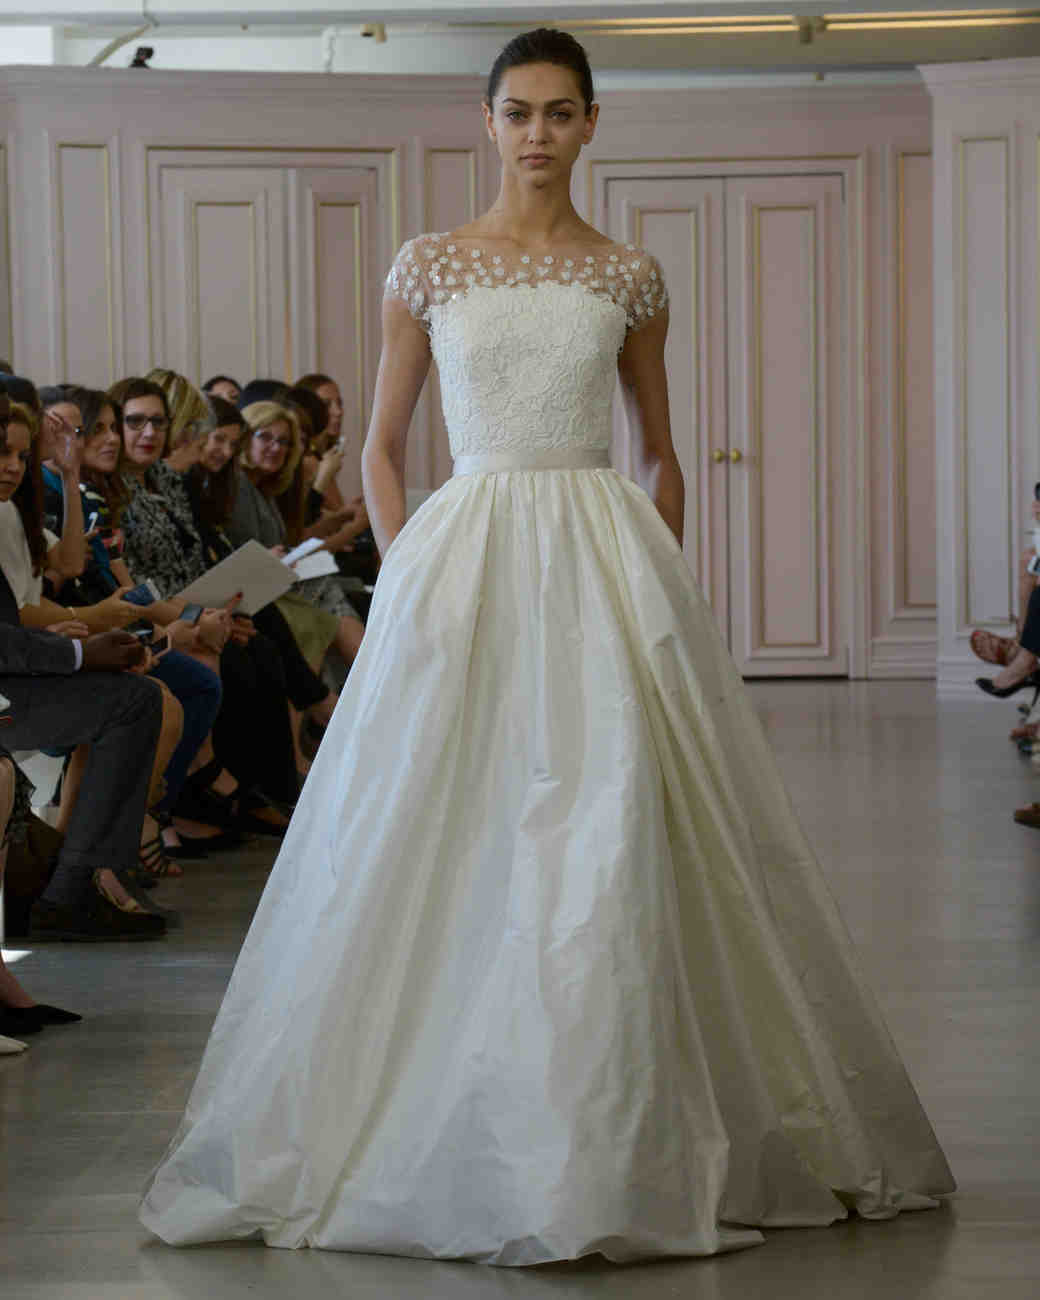 sarah jessica parker tips stepping up your wedding day style wedding dressing Go for Tasteful Over Trendy